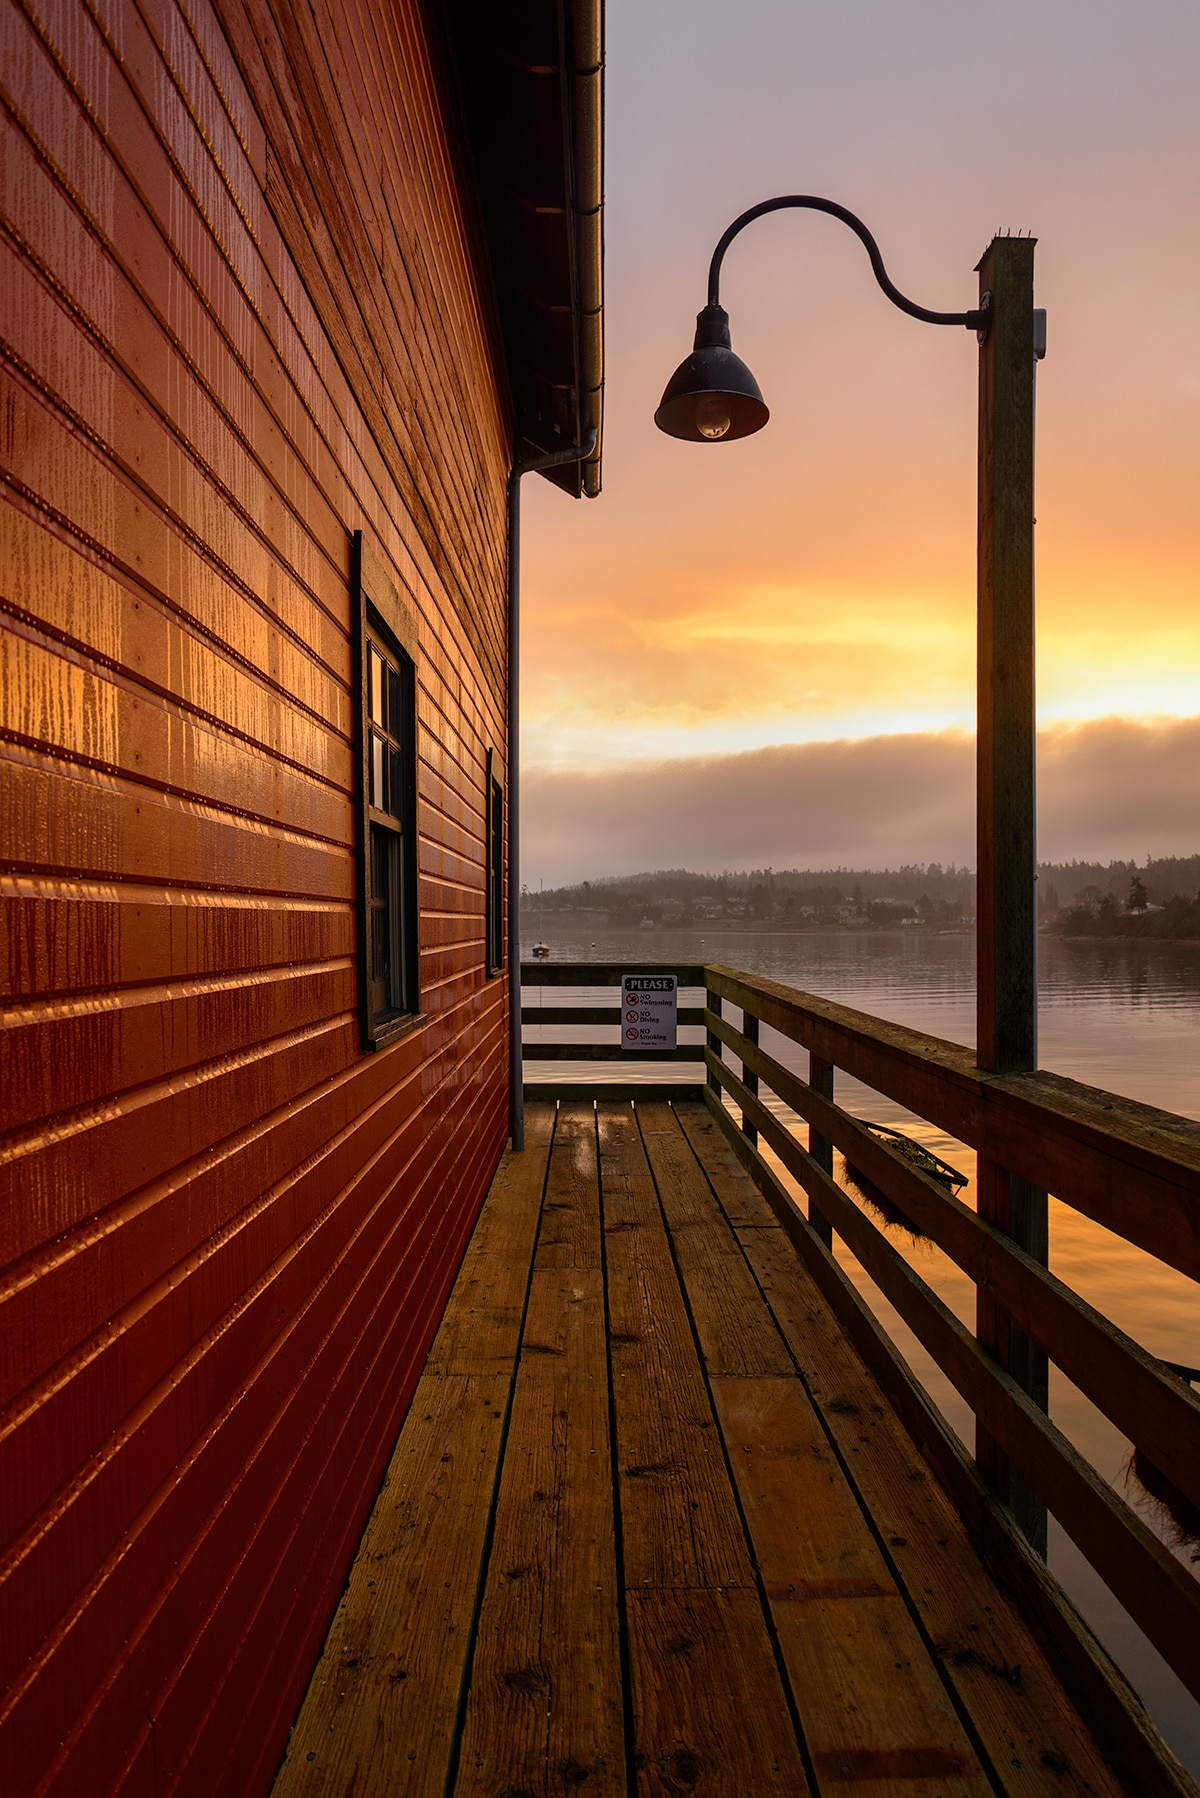 The red walls of the Coupeville Wharf are backed by the oranges of a sunrise.